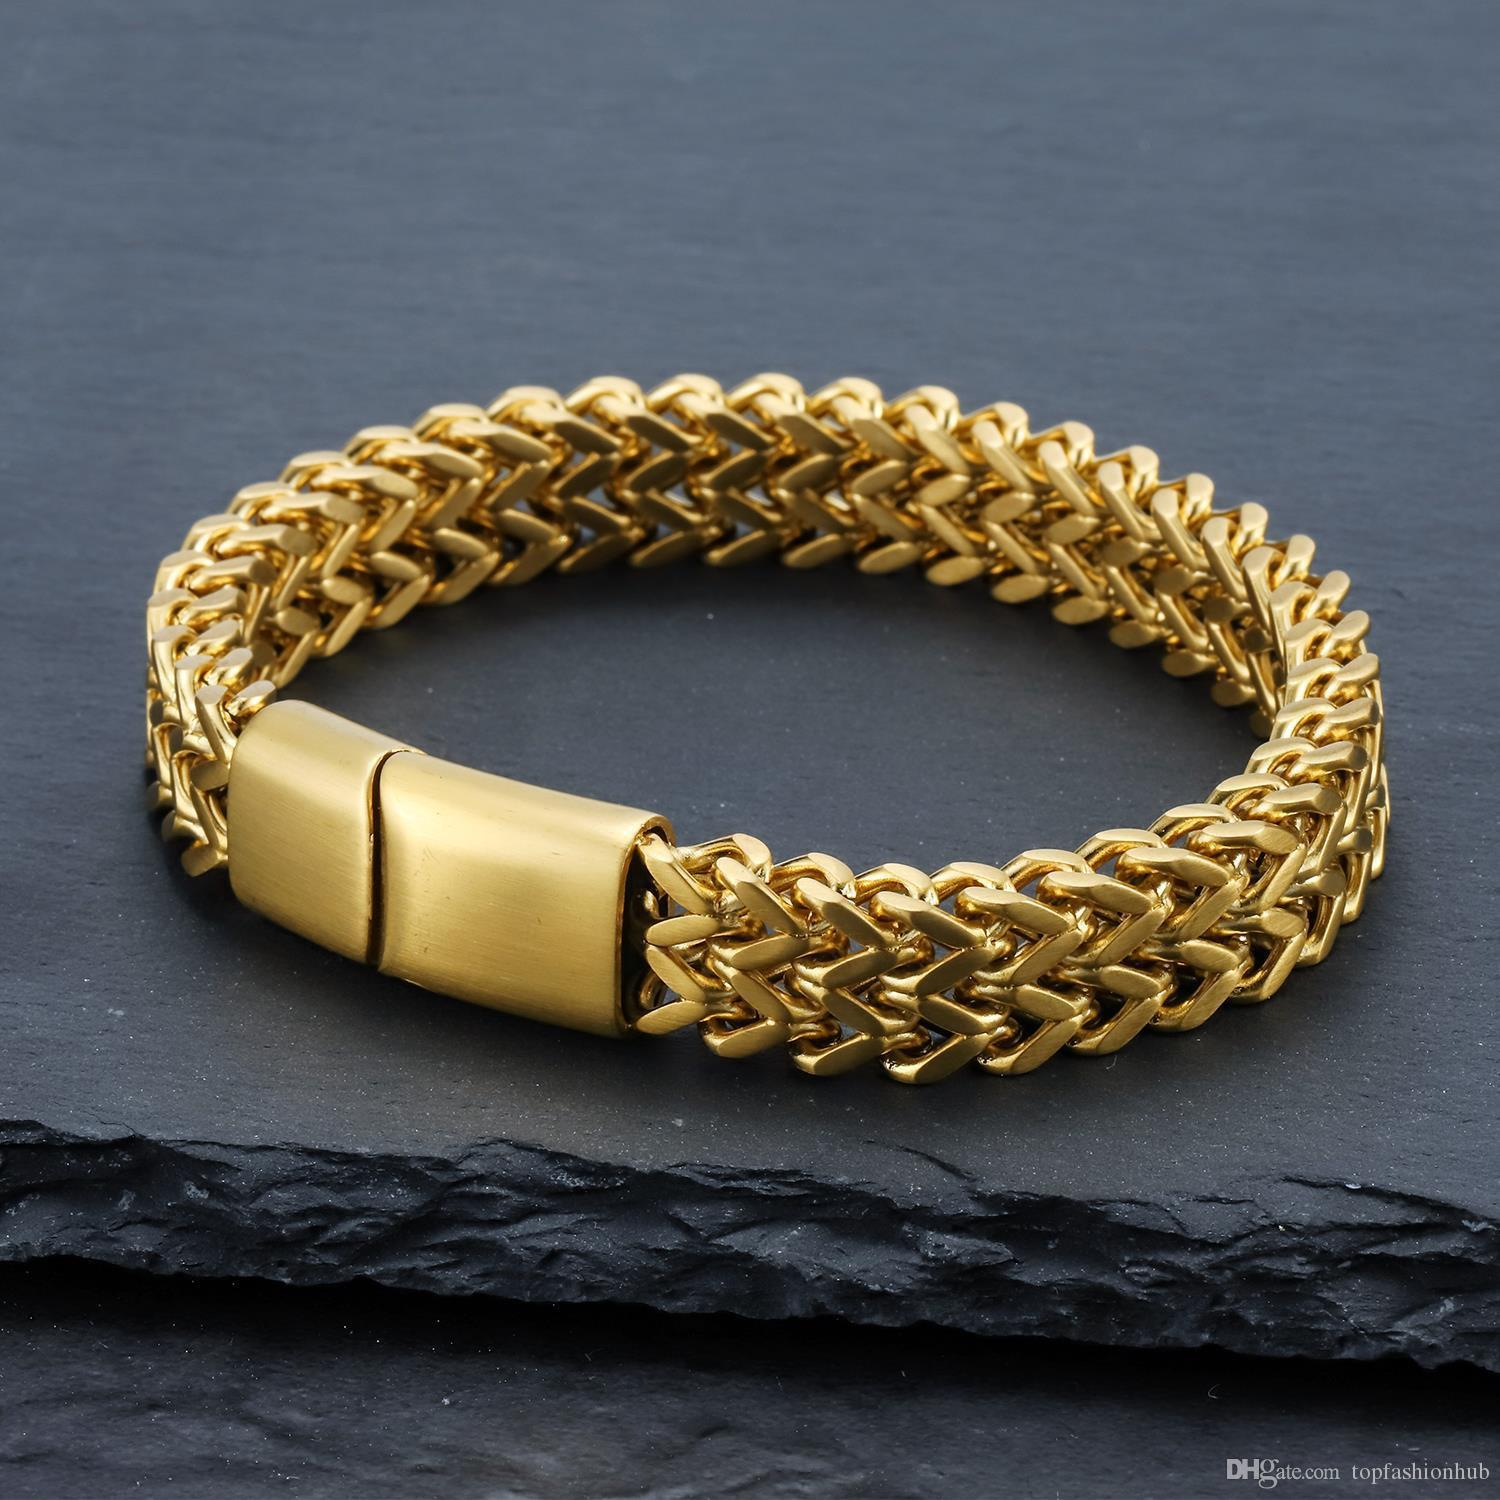 Hip-hop Stainless Steel Braided Bracelets & Bangles Punk Hip Hop Jewelry Gold Silver Rock Roll Accessories